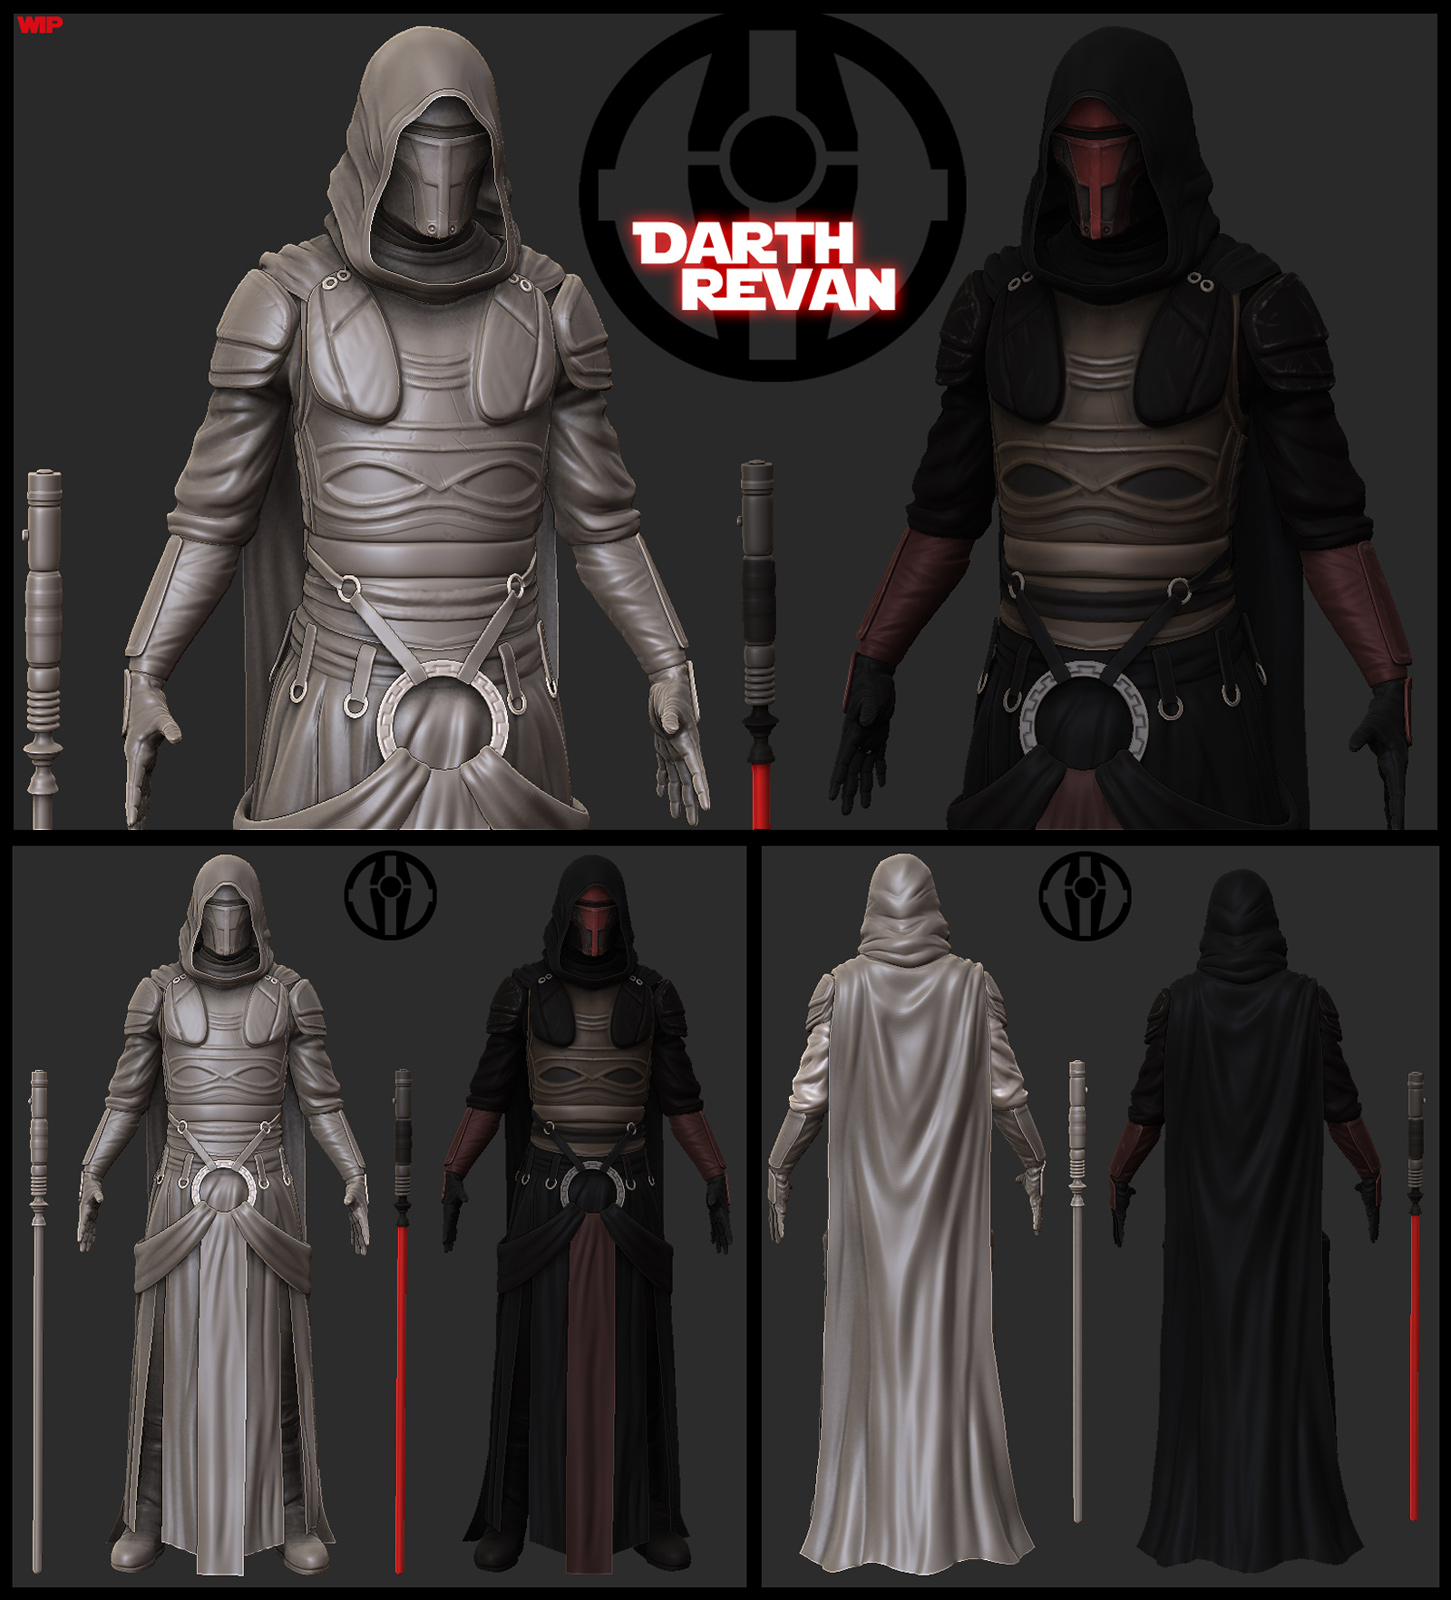 Darth Revan Comicon entry WIP by digitalinkrod